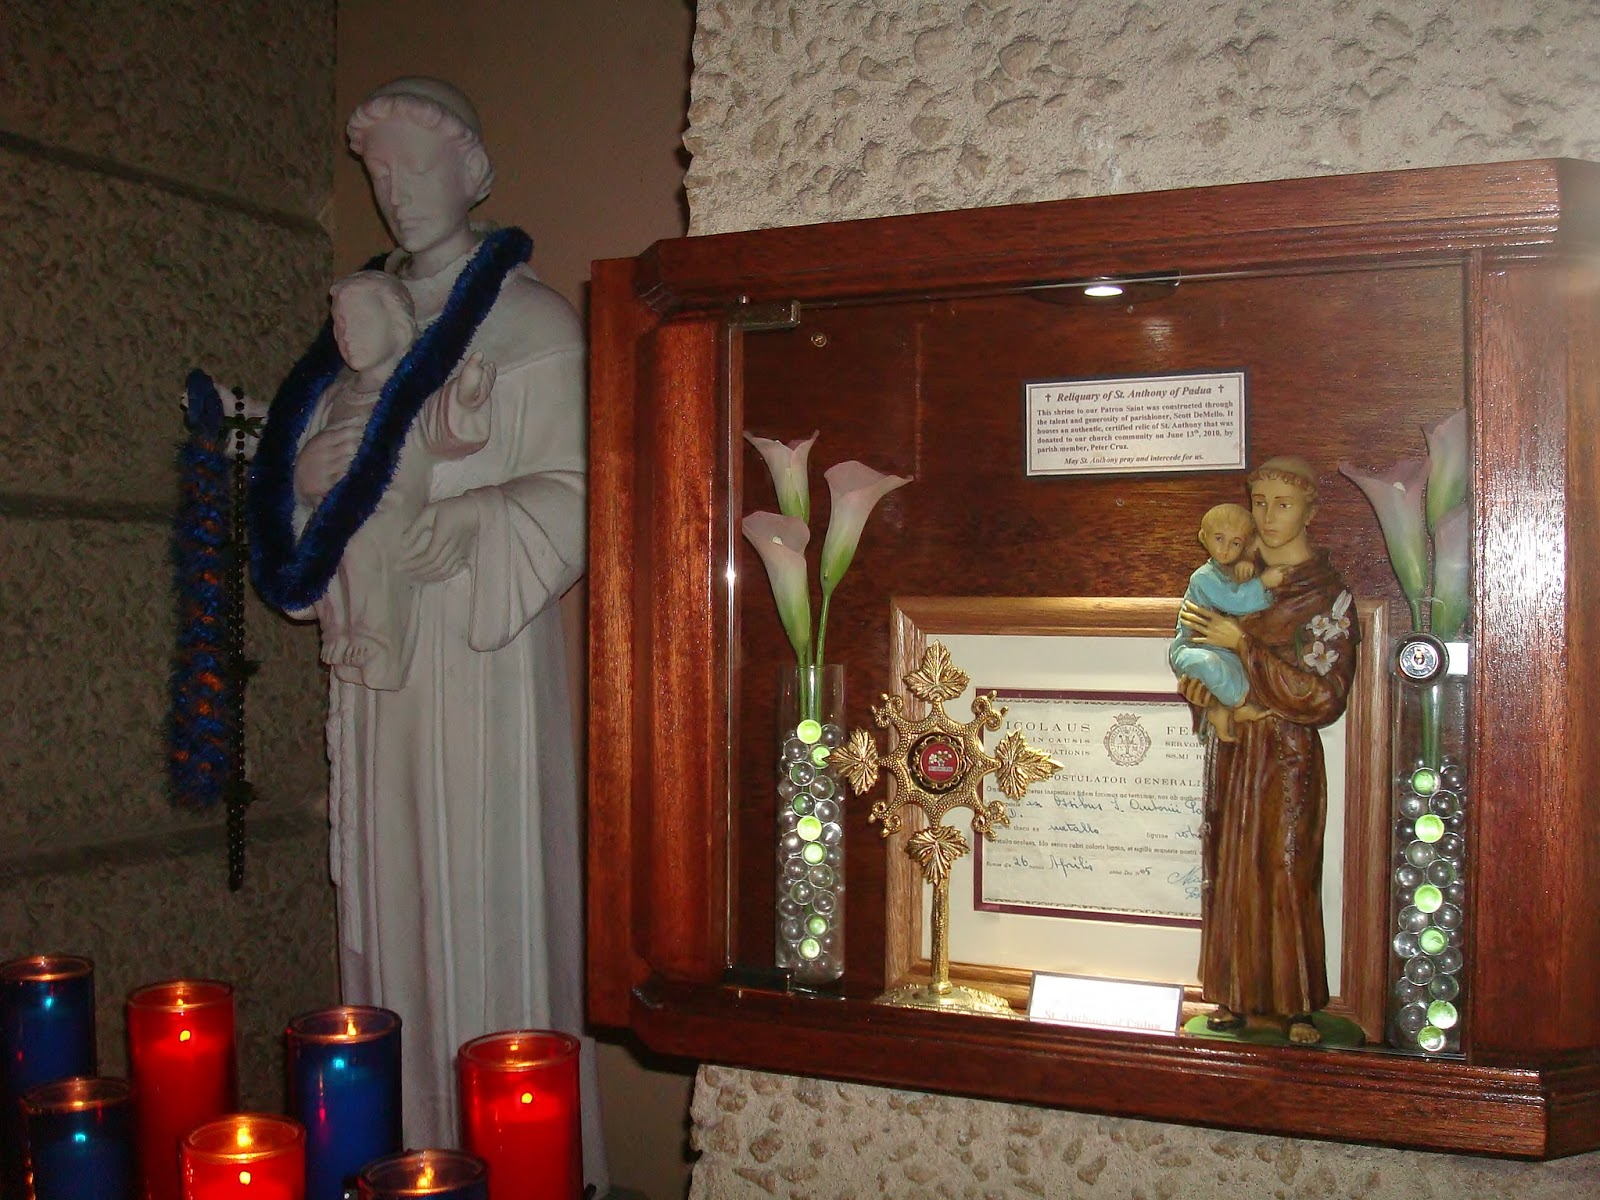 The votive shrine of st anthony of padua in the church of st anthony in kailua oahu hi